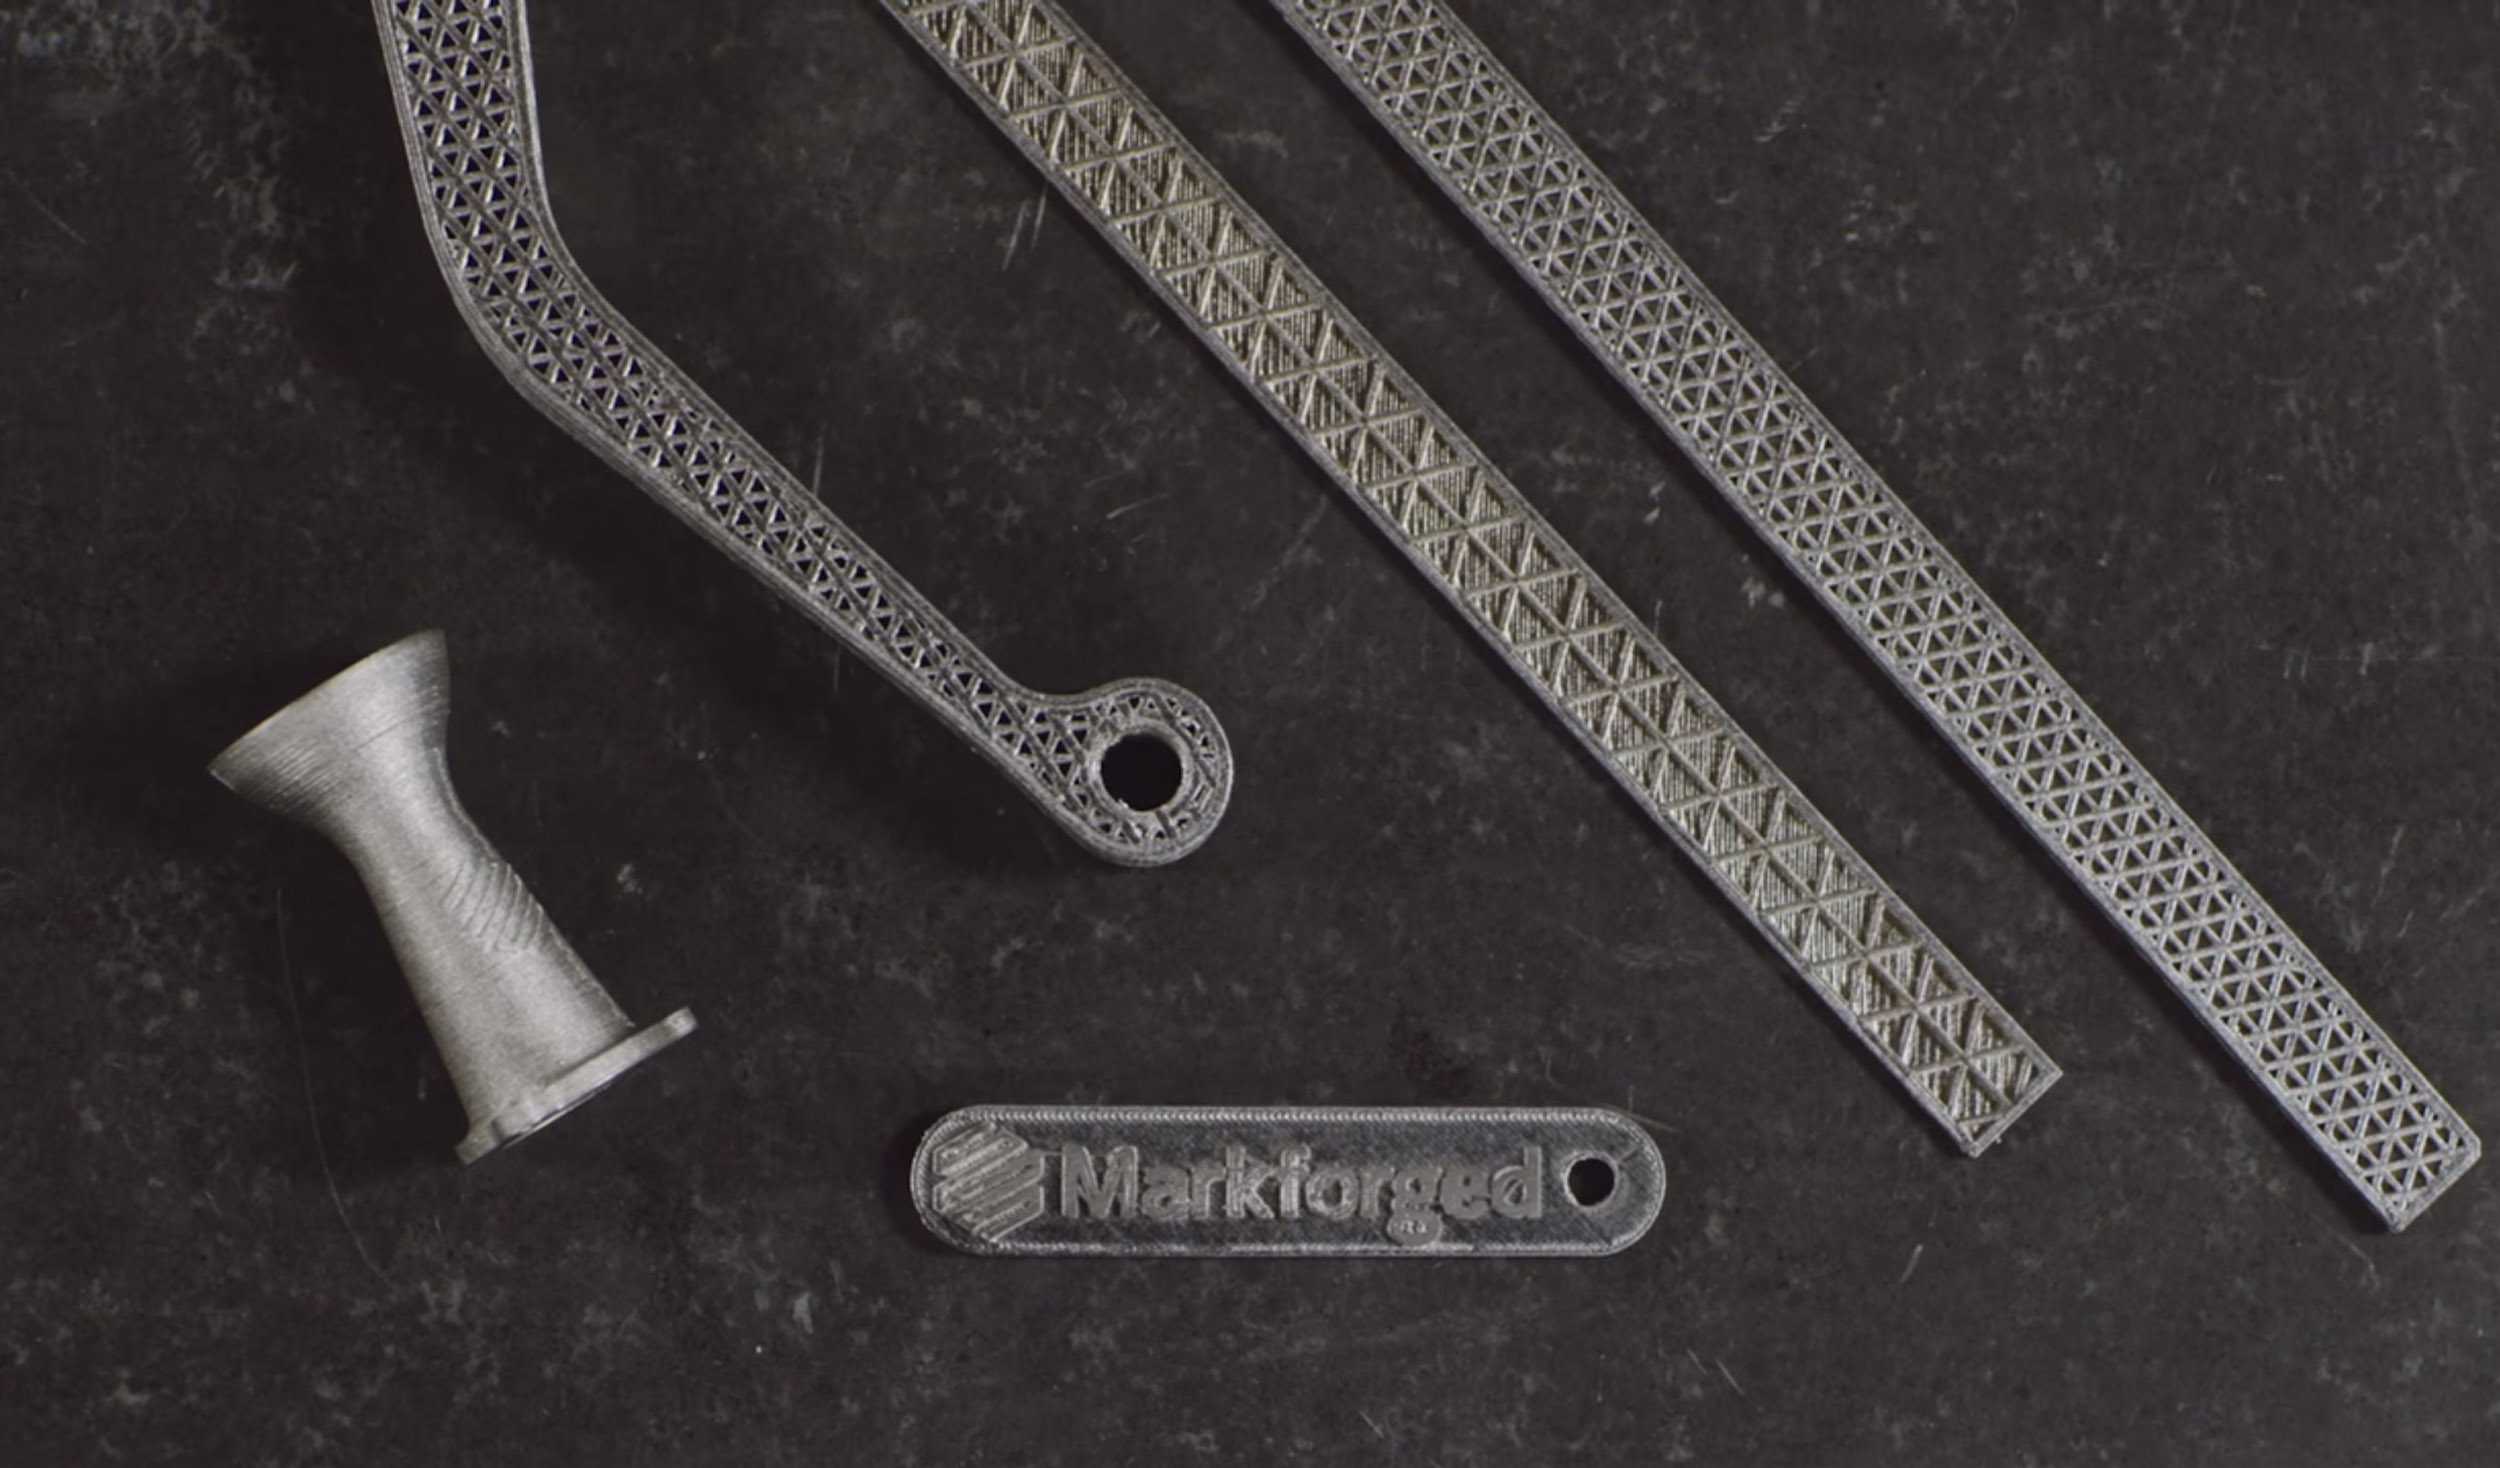 Fond Markforged-3